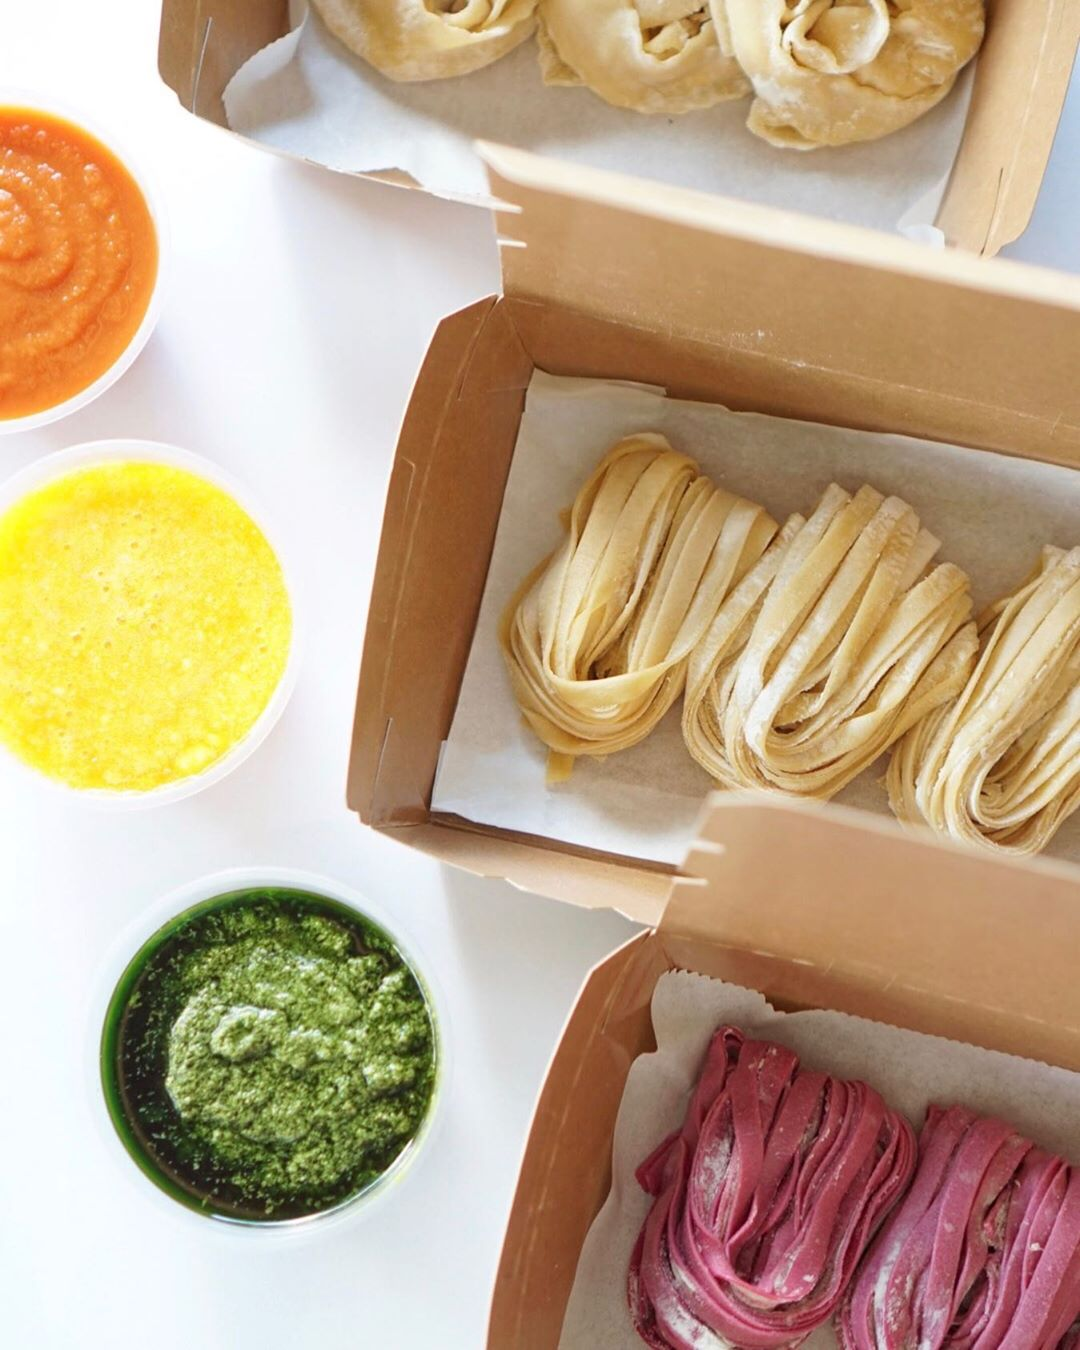 Home Cooking Kits - Little Pasta cooking kit